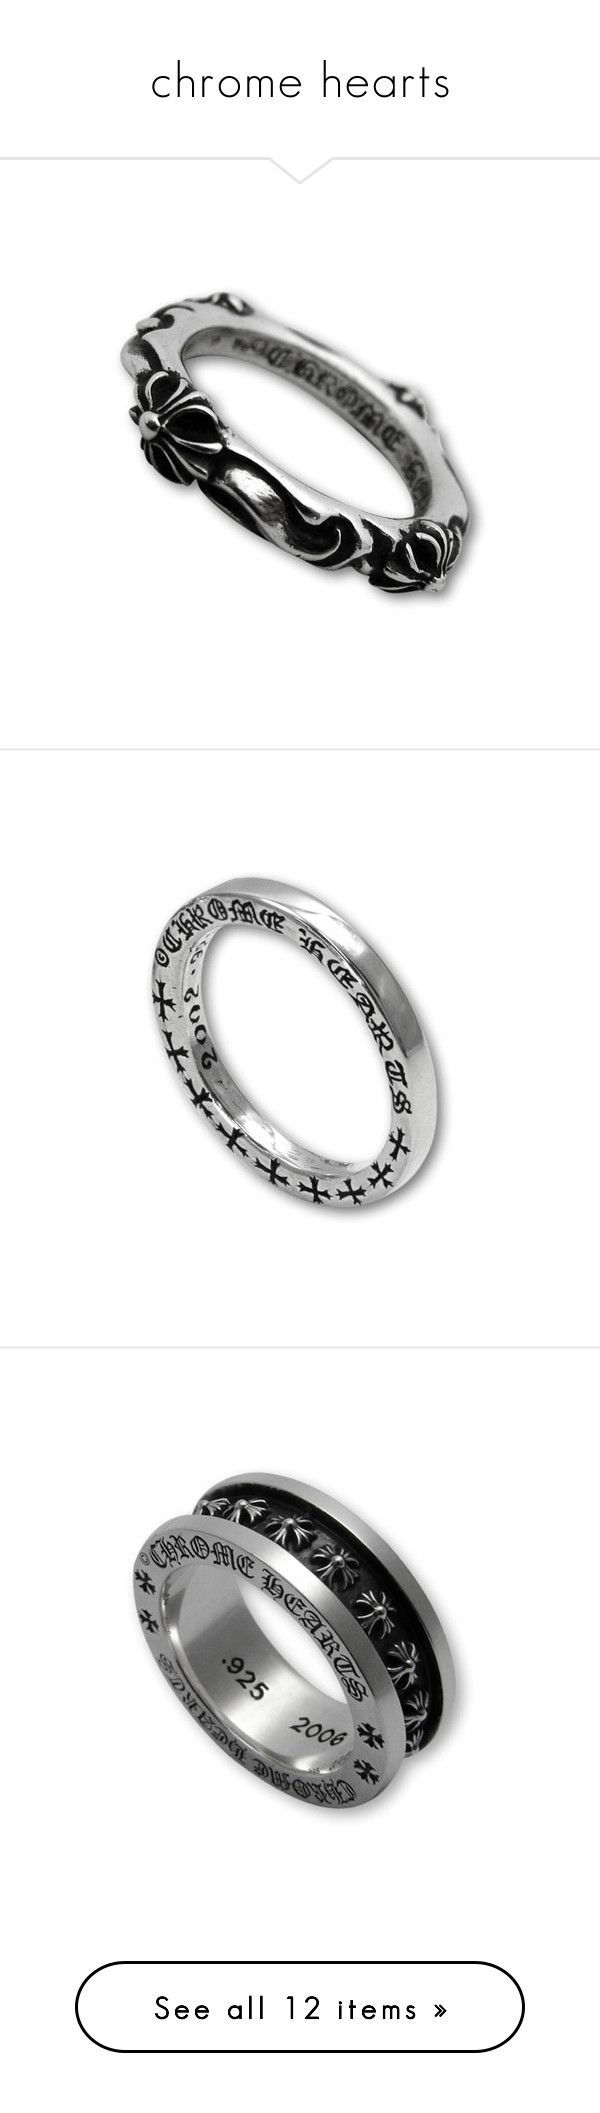 """chrome hearts"" by imani-riunge ❤ liked on Polyvore featuring jewelry, rings, chrome hearts, chrome hearts ring, chrome hearts jewelry, goth jewelry, gothic rings, silver jewellery, silver rings and silver jewelry"